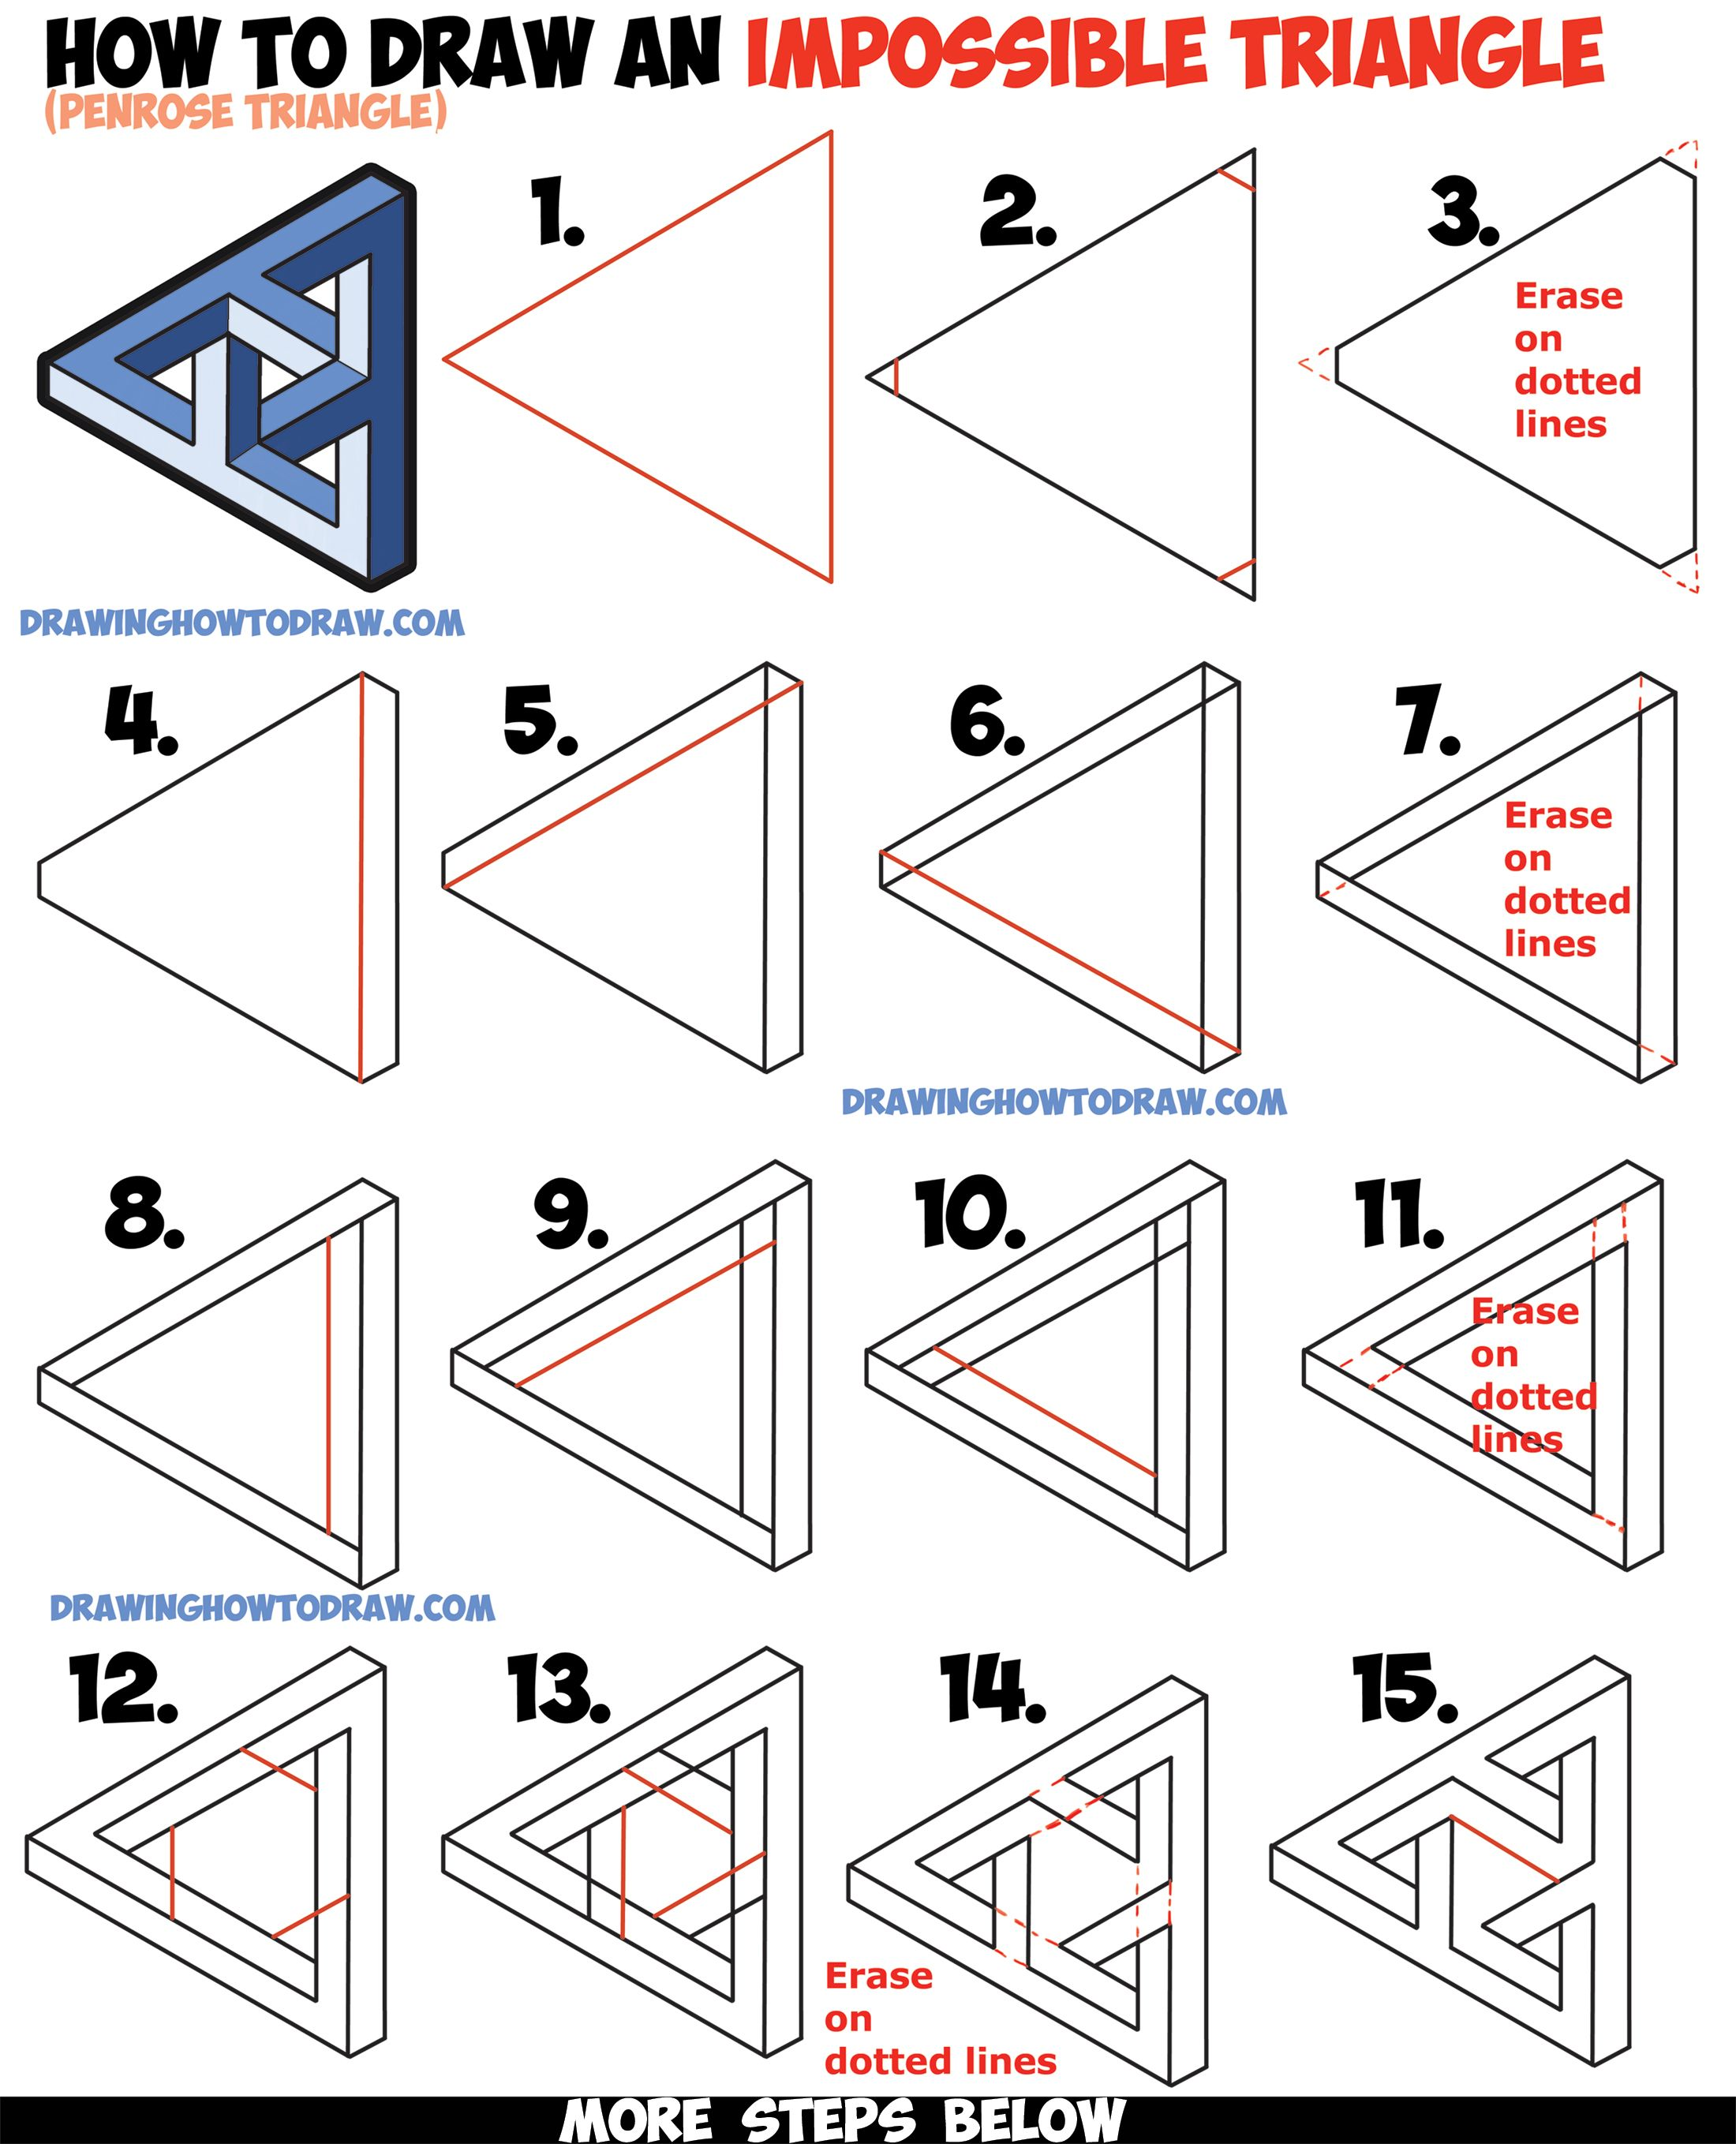 How To Draw An Impossible Triangle Penrose Triangle That